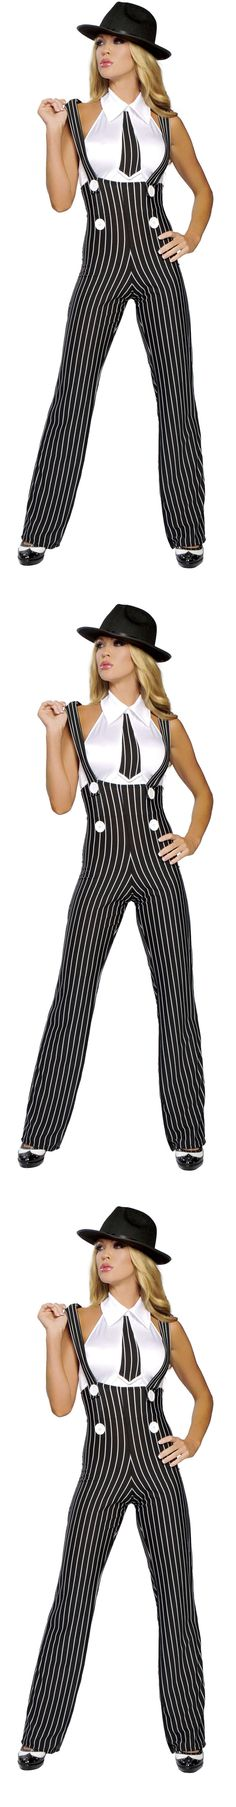 Costume GangsterMobster: 2Pc Gangsta Mama - Black/White BUY IT NOW ONLY: $85.00